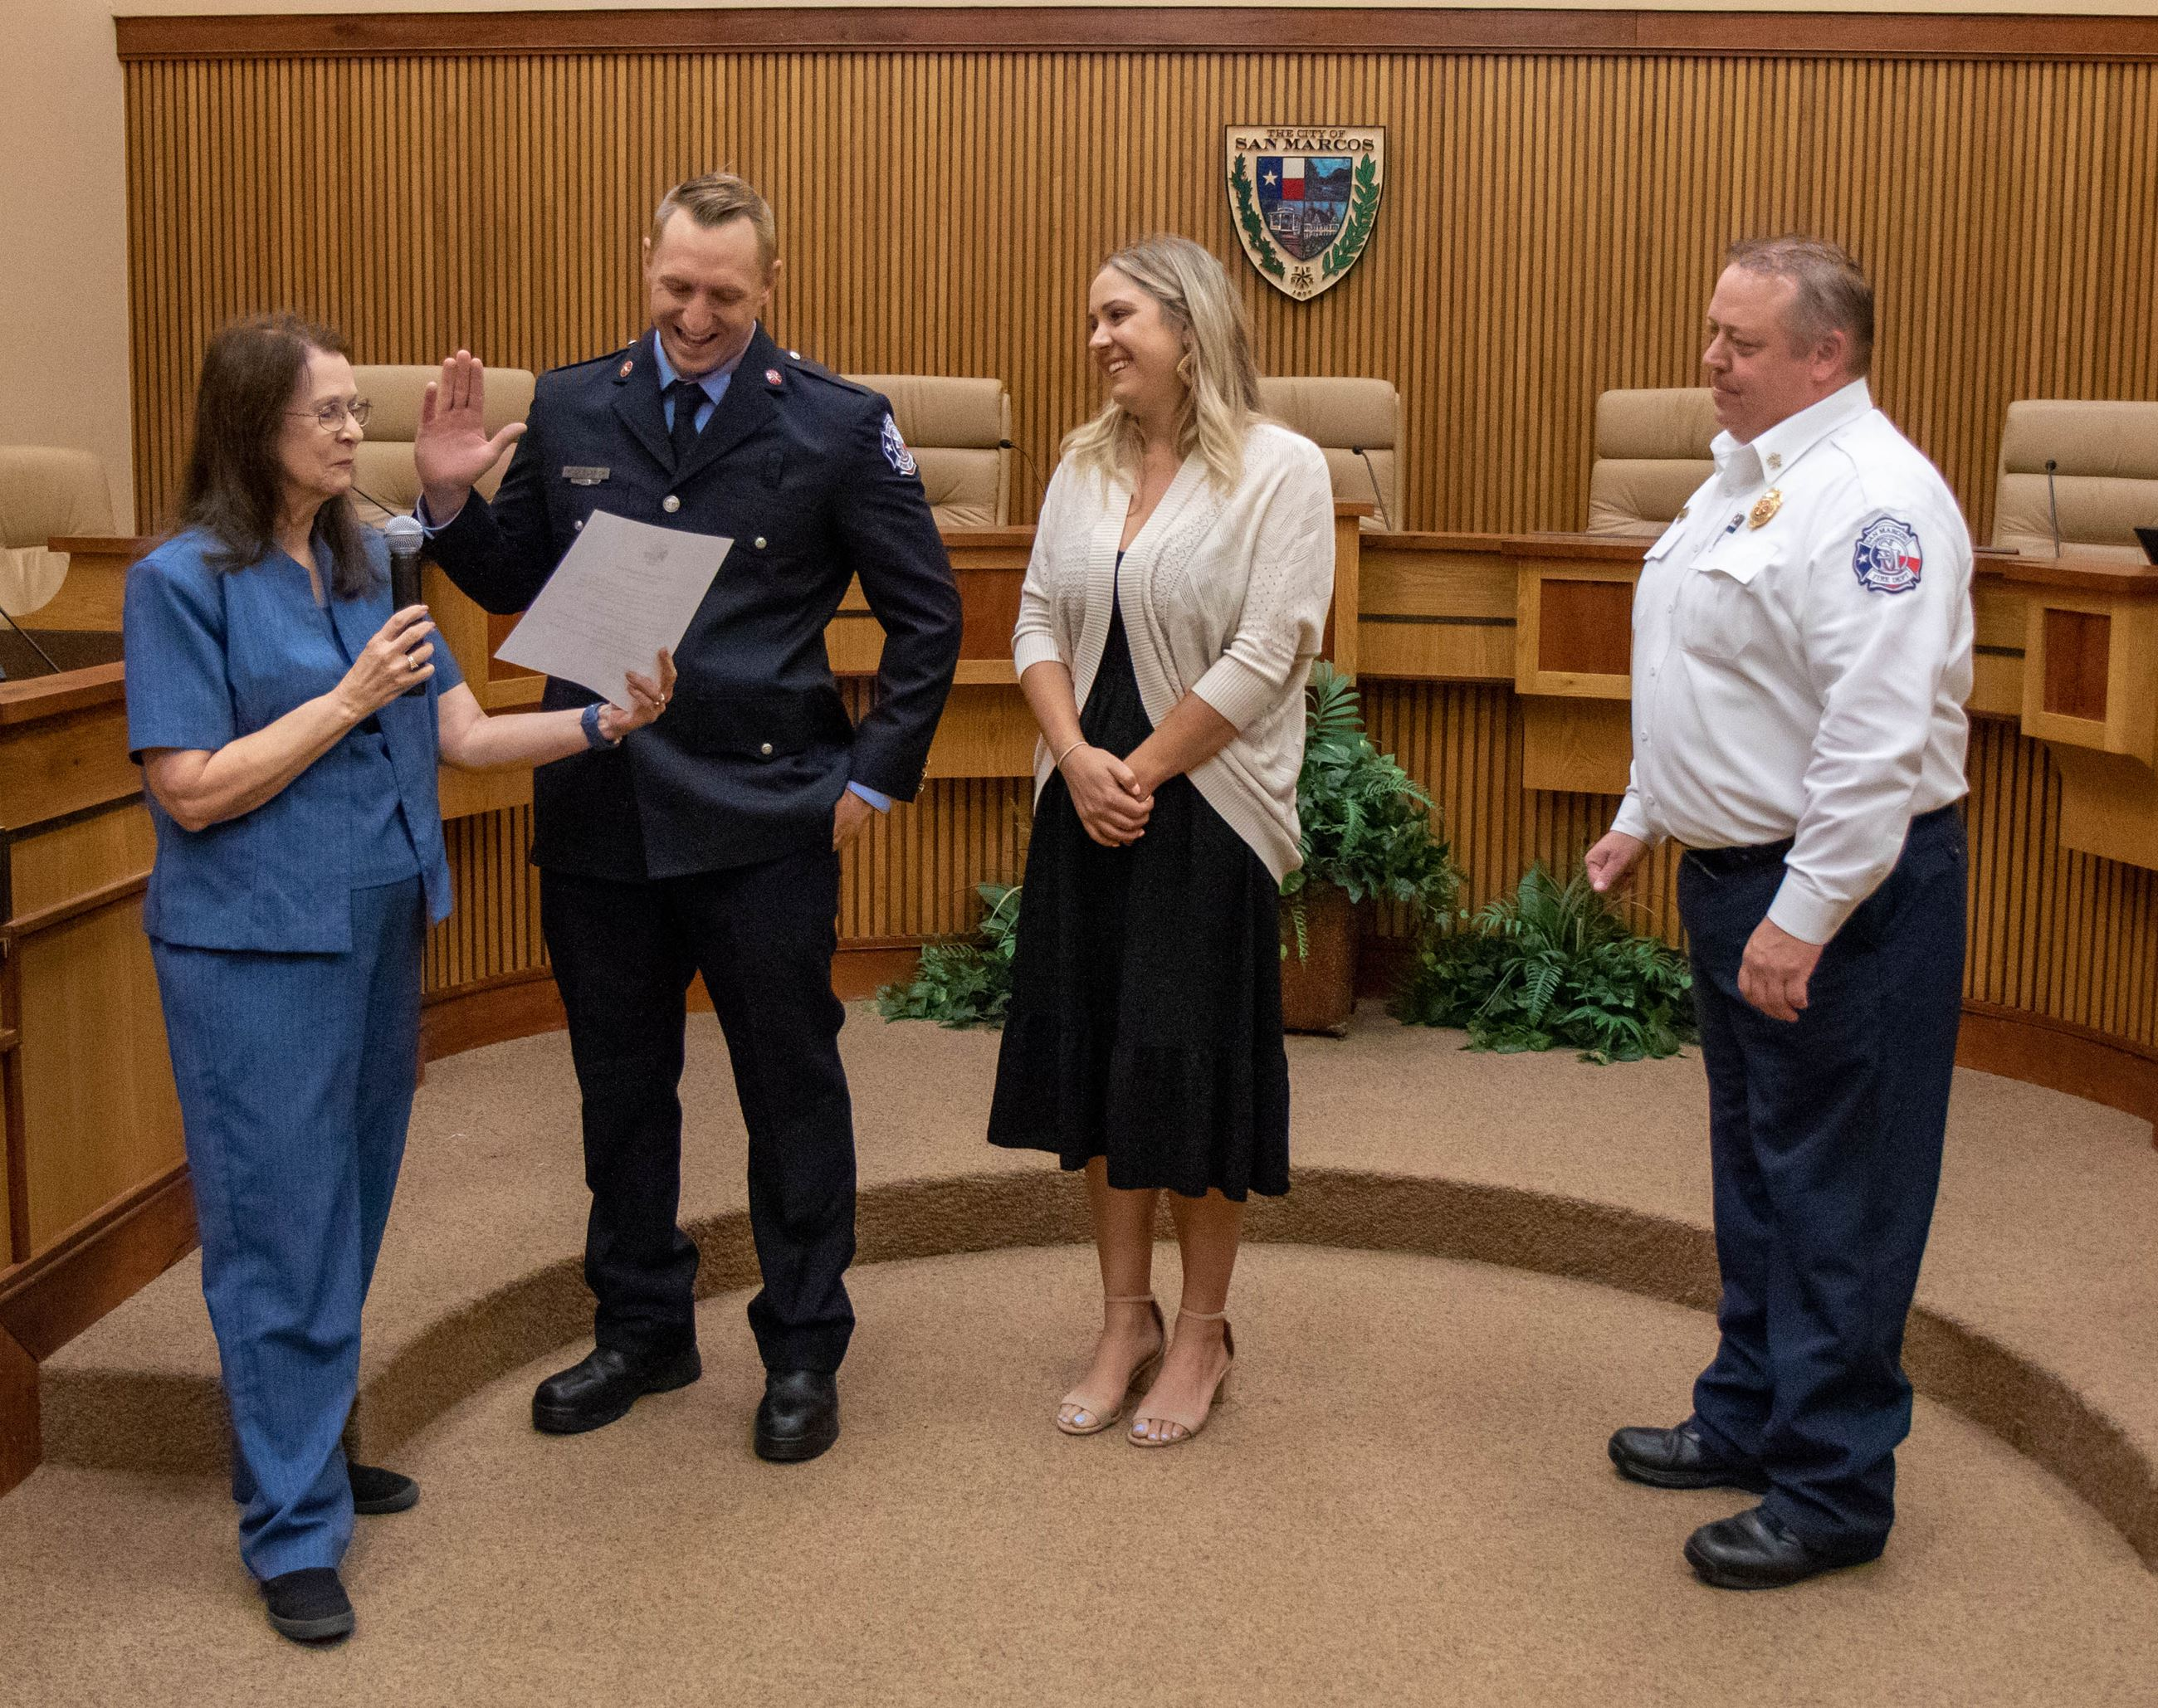 Mayor Hughson & Chief Stephens perform the official Oath of Office with Firefighter Rudy Blasich